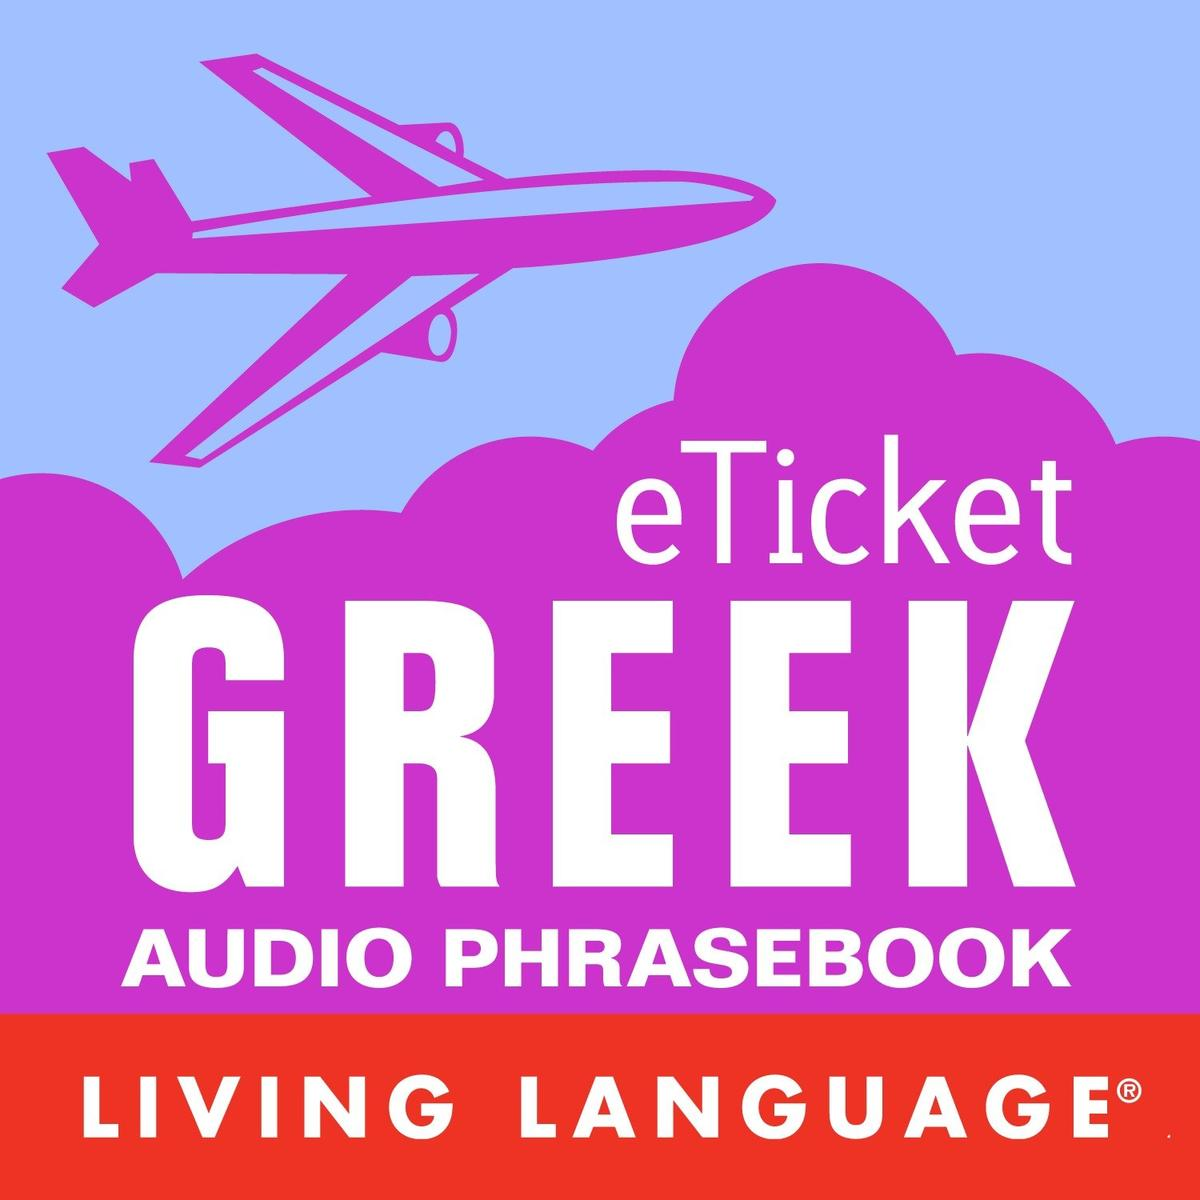 eTicket Greek - Audiobook